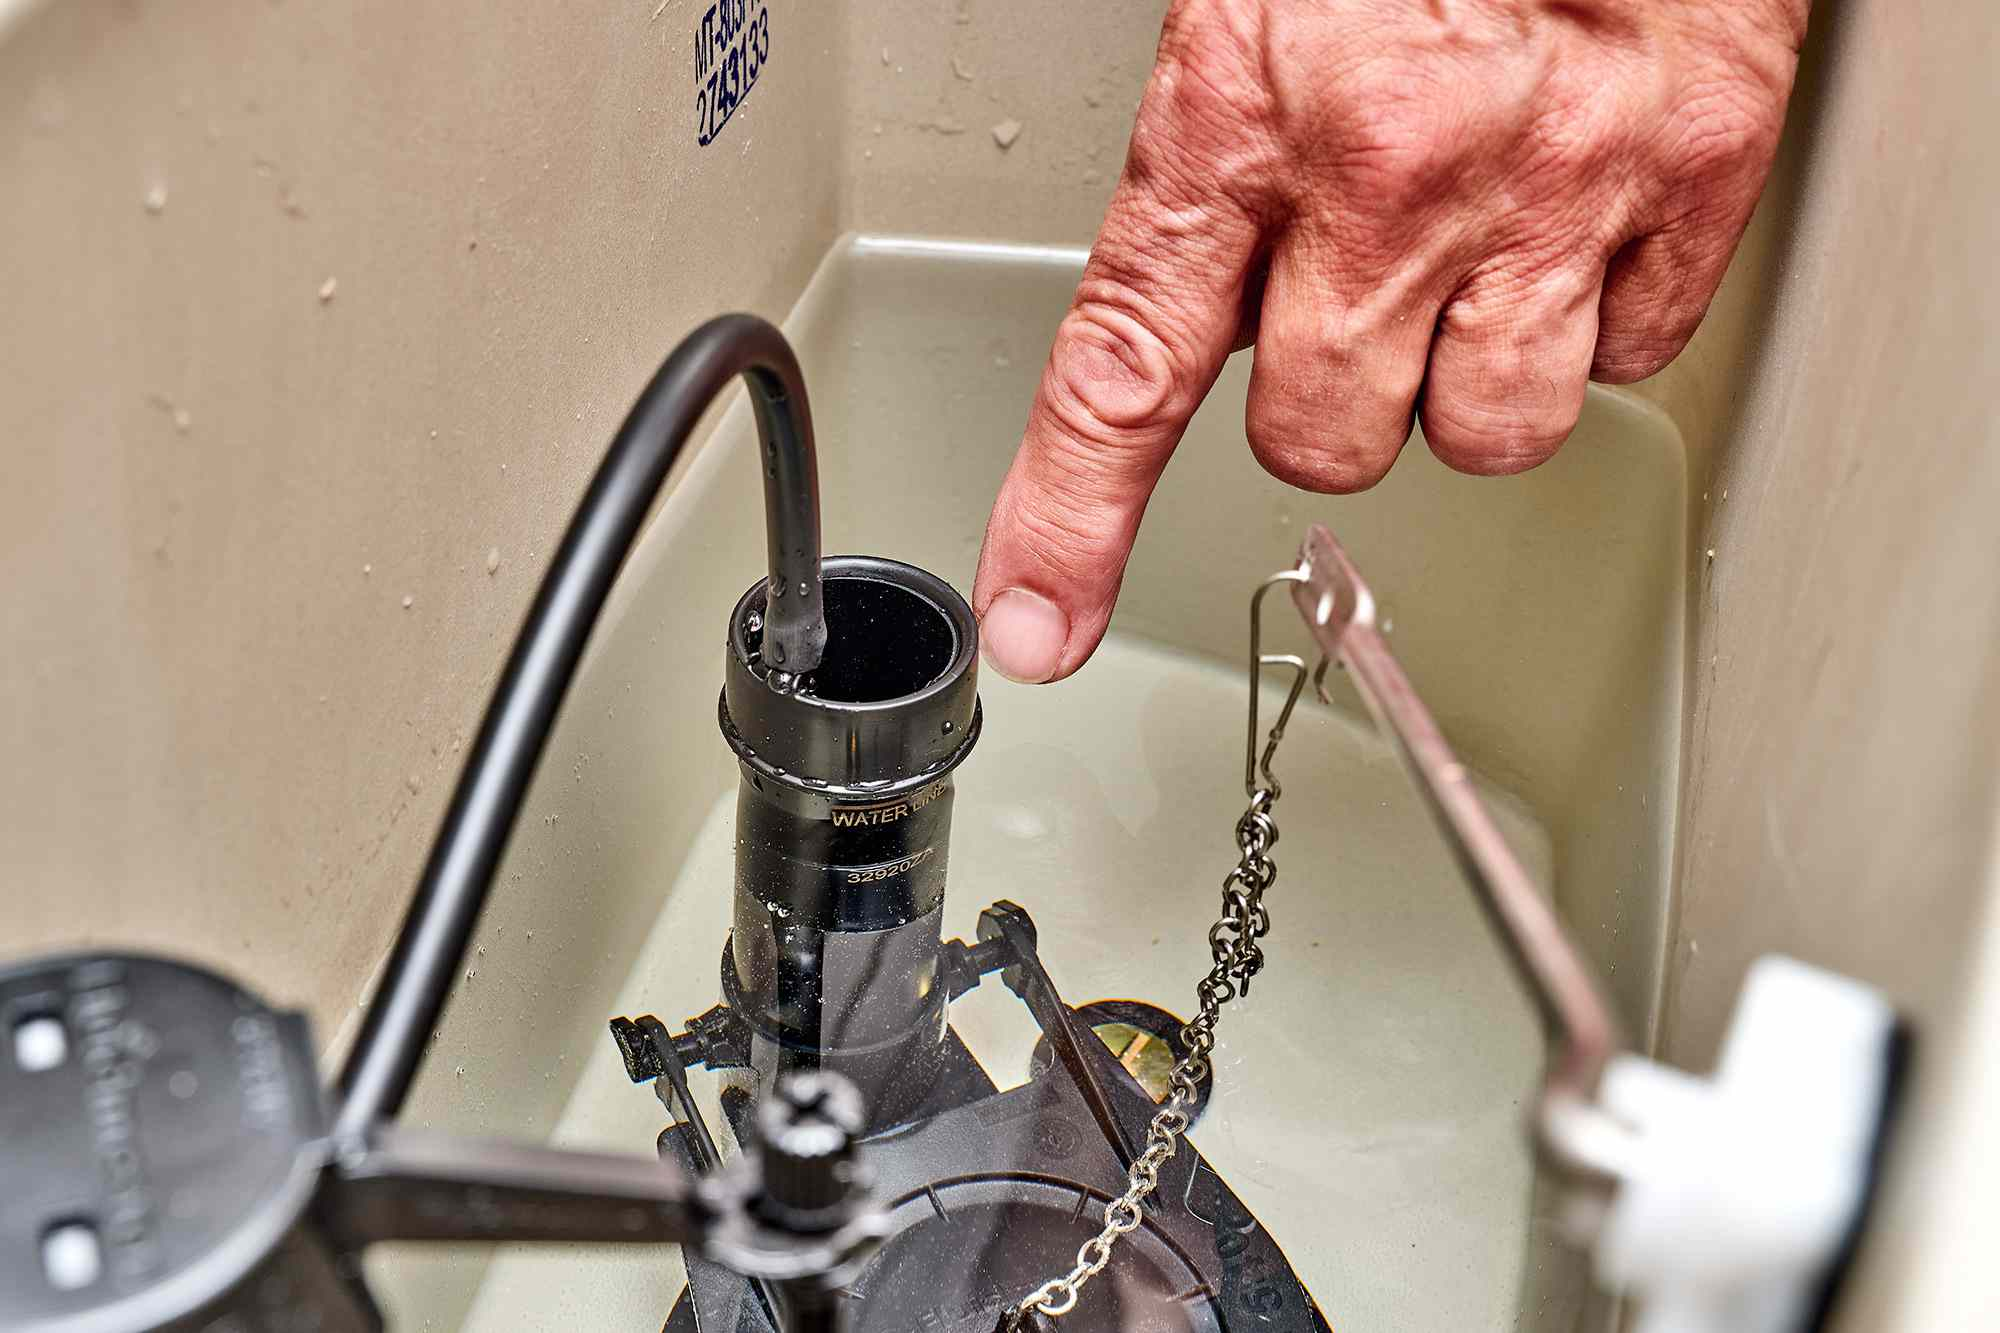 Water level being monitored for level mark on float-cup fill valve